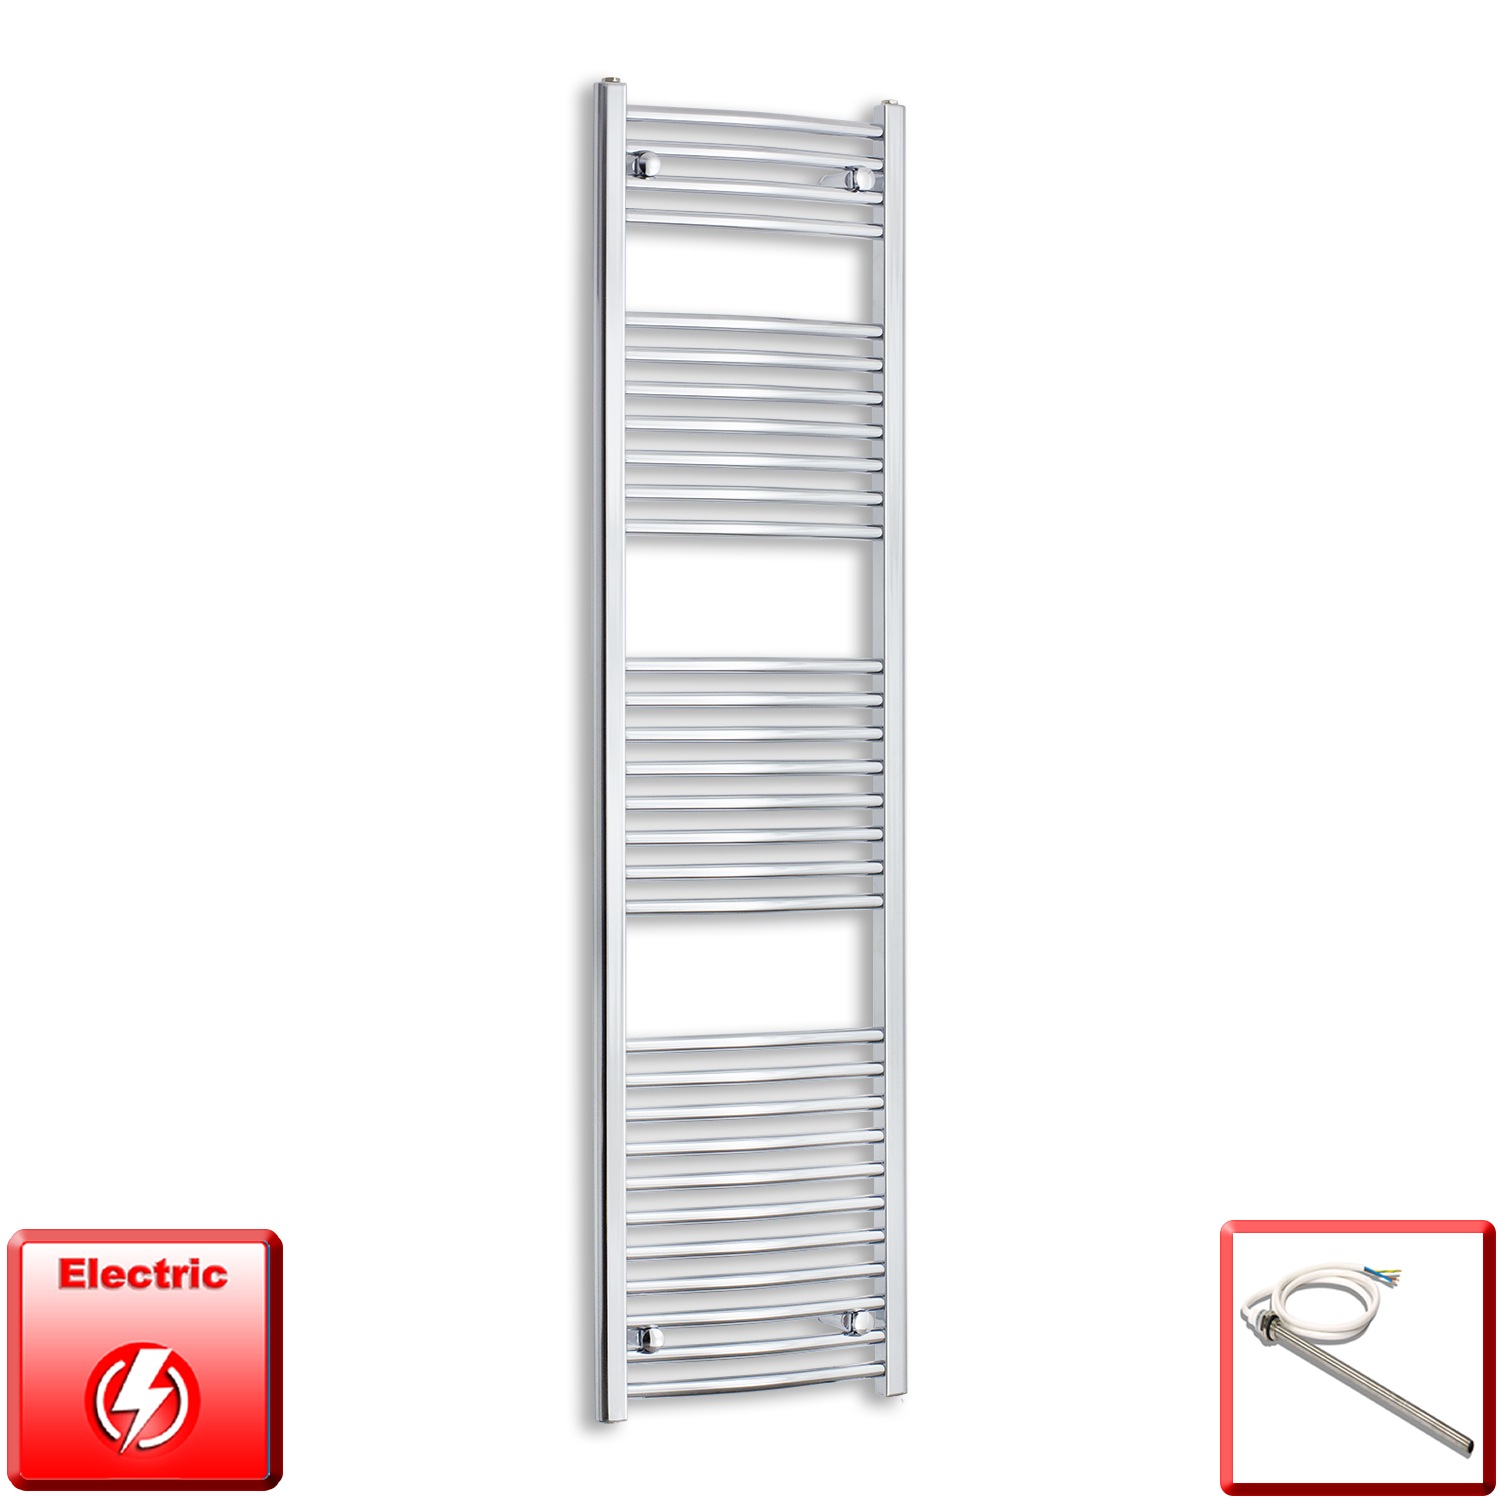 450mm Wide 1700mm High Flat Or Curved Chrome Pre-Filled Electric Heated Towel Rail Radiator HTR,Single Heat Element / Straight